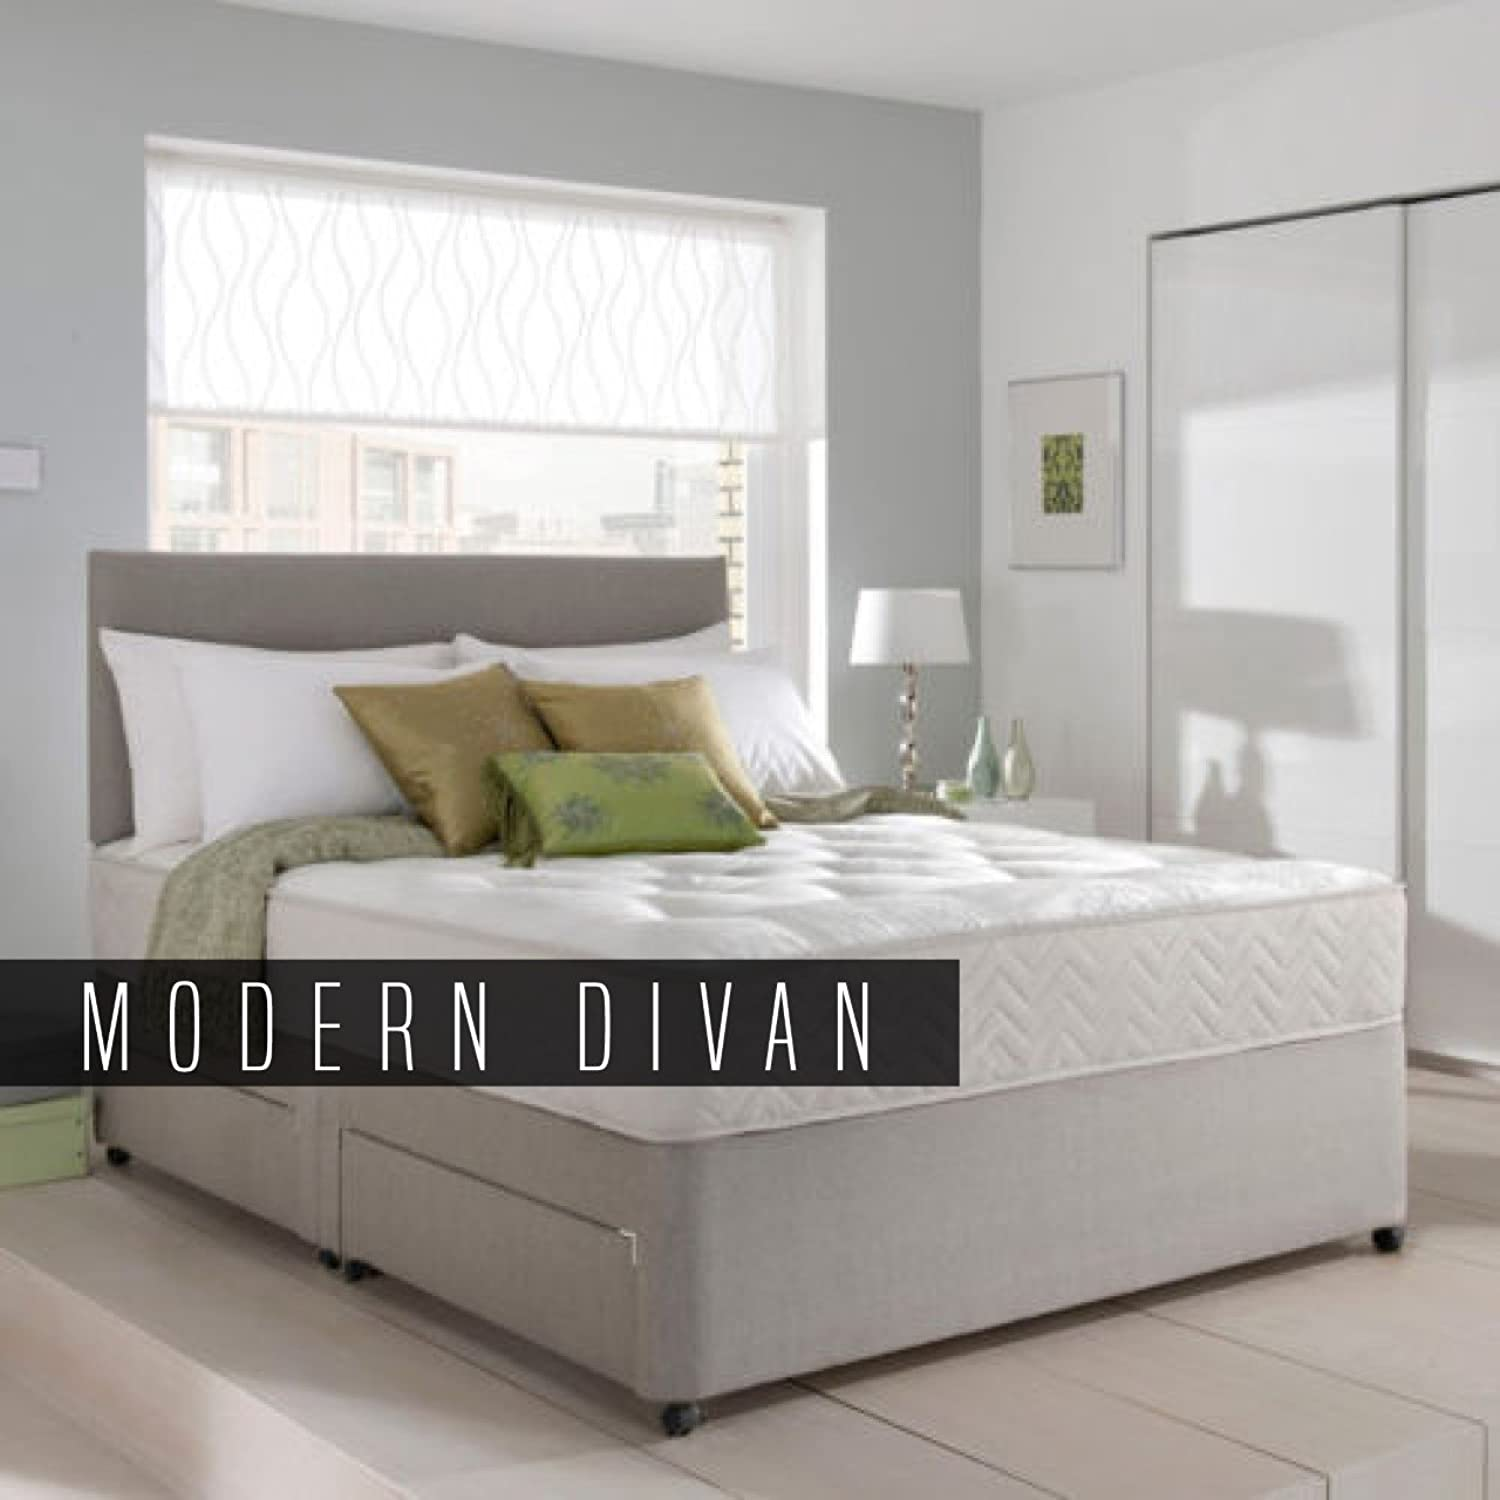 Light Grey Divan Bed with Orthopaedic Mattress, Headboard (4ft6 Double) - Chenile Fabric